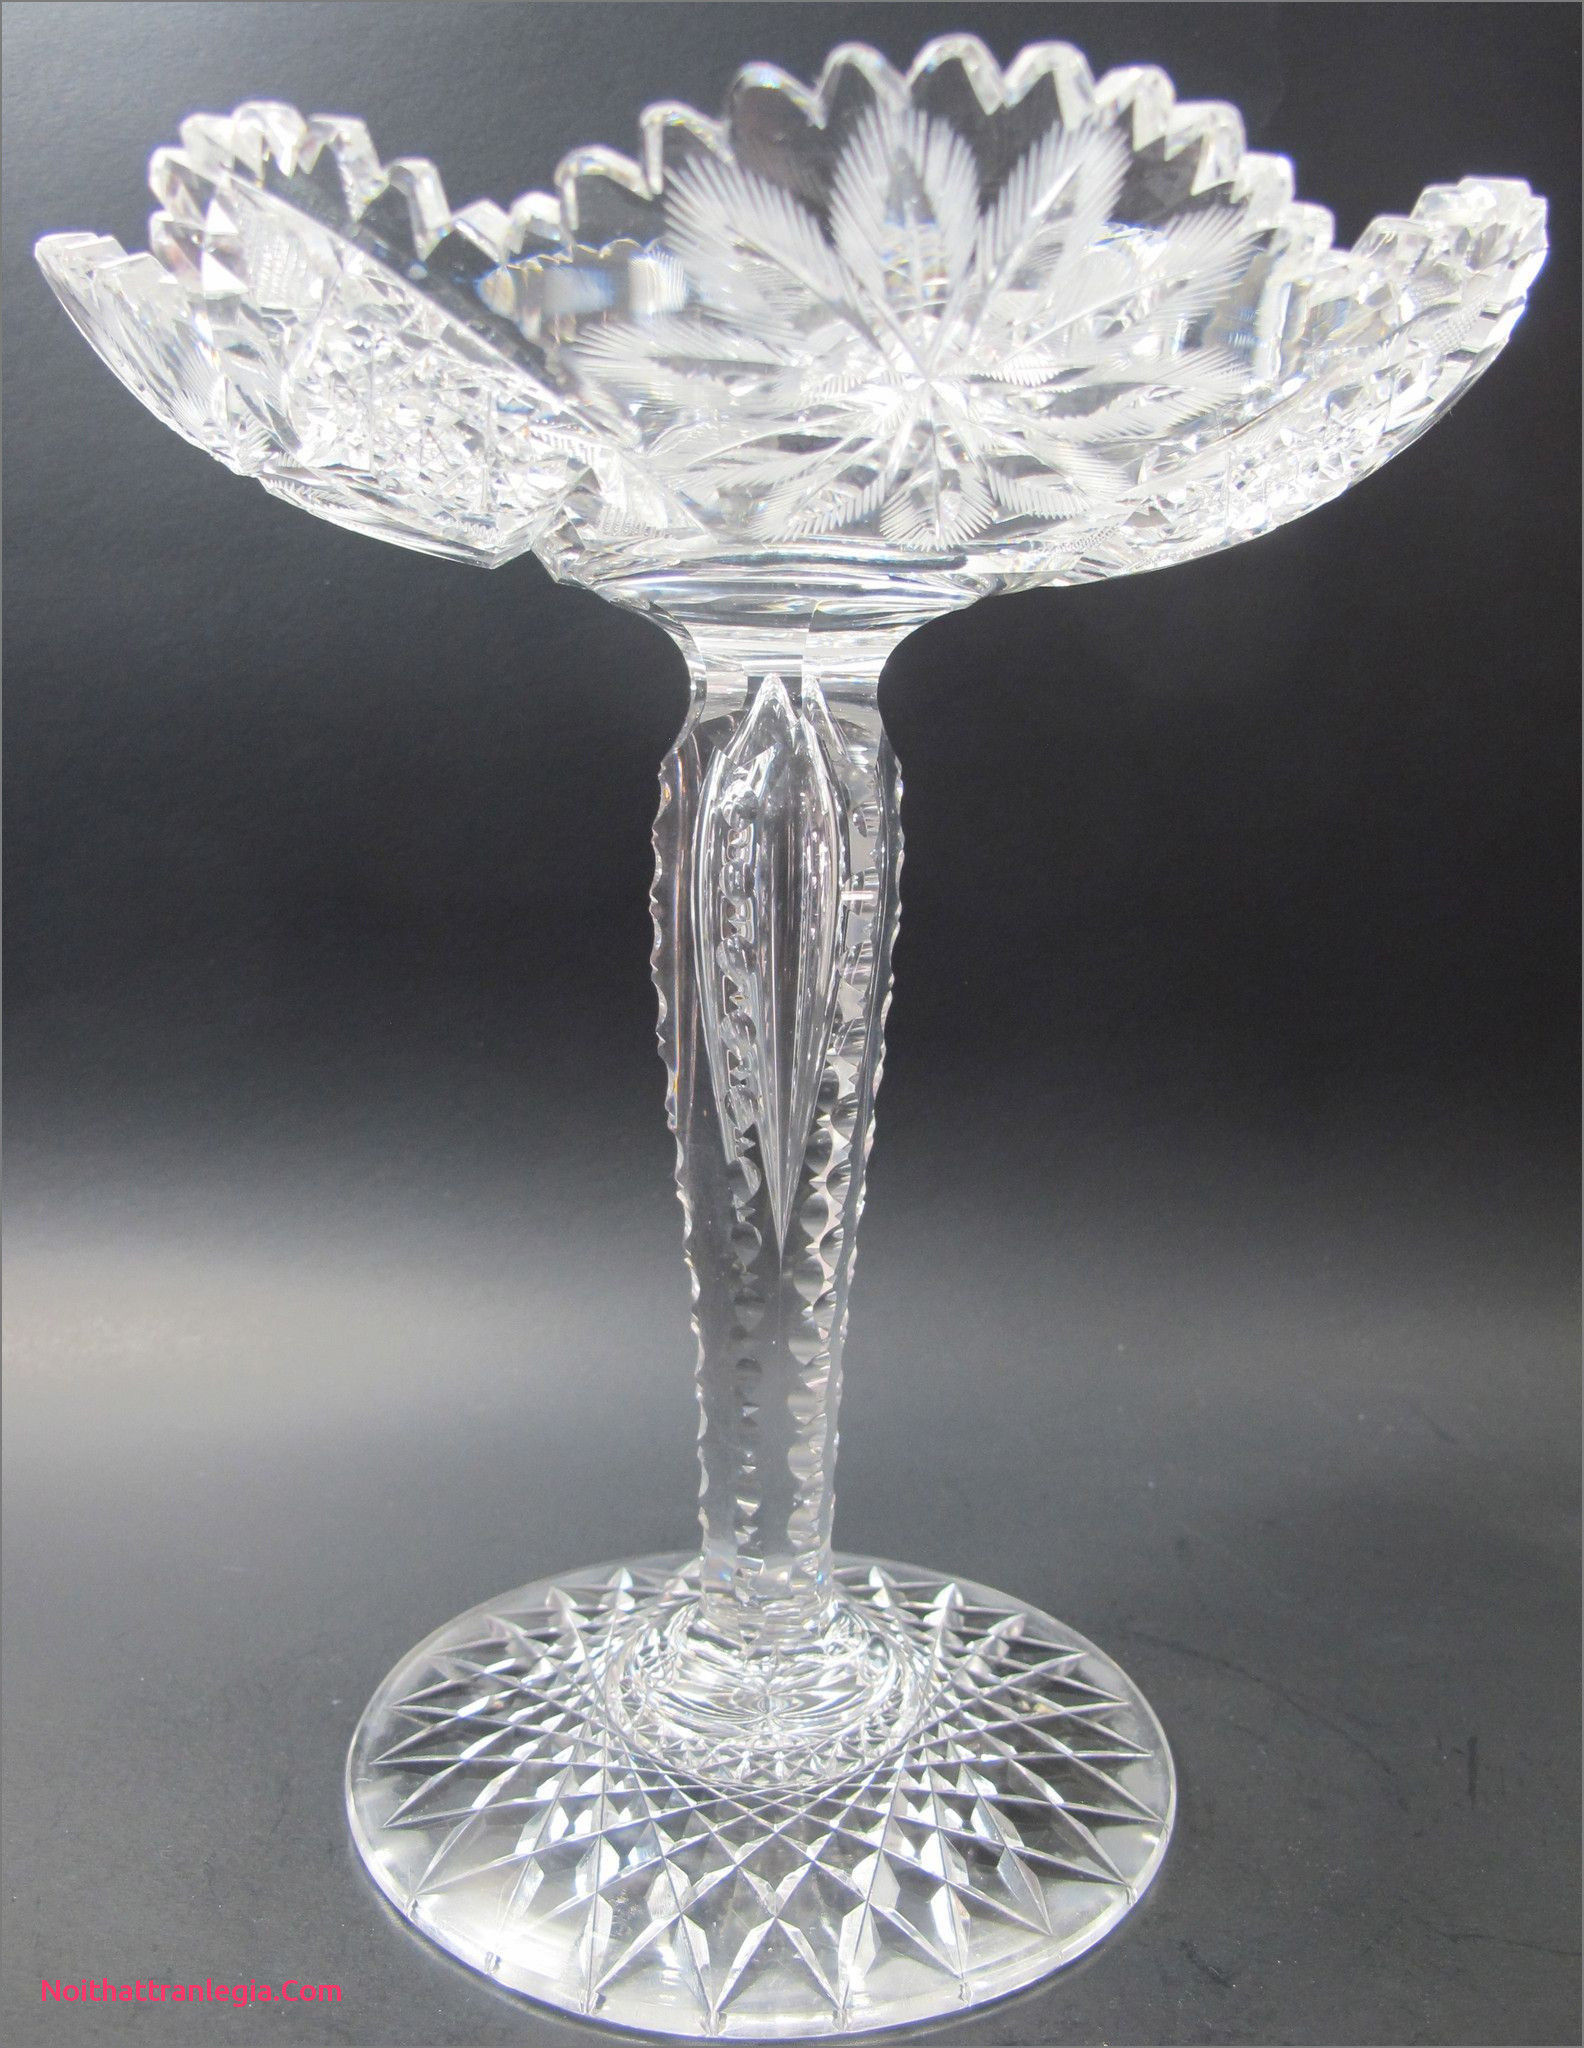 small crystal flower vase of 20 cut glass antique vase noithattranlegia vases design with fering this abp antique cut glass pote from the american brilliant period 1886 1916 9 5